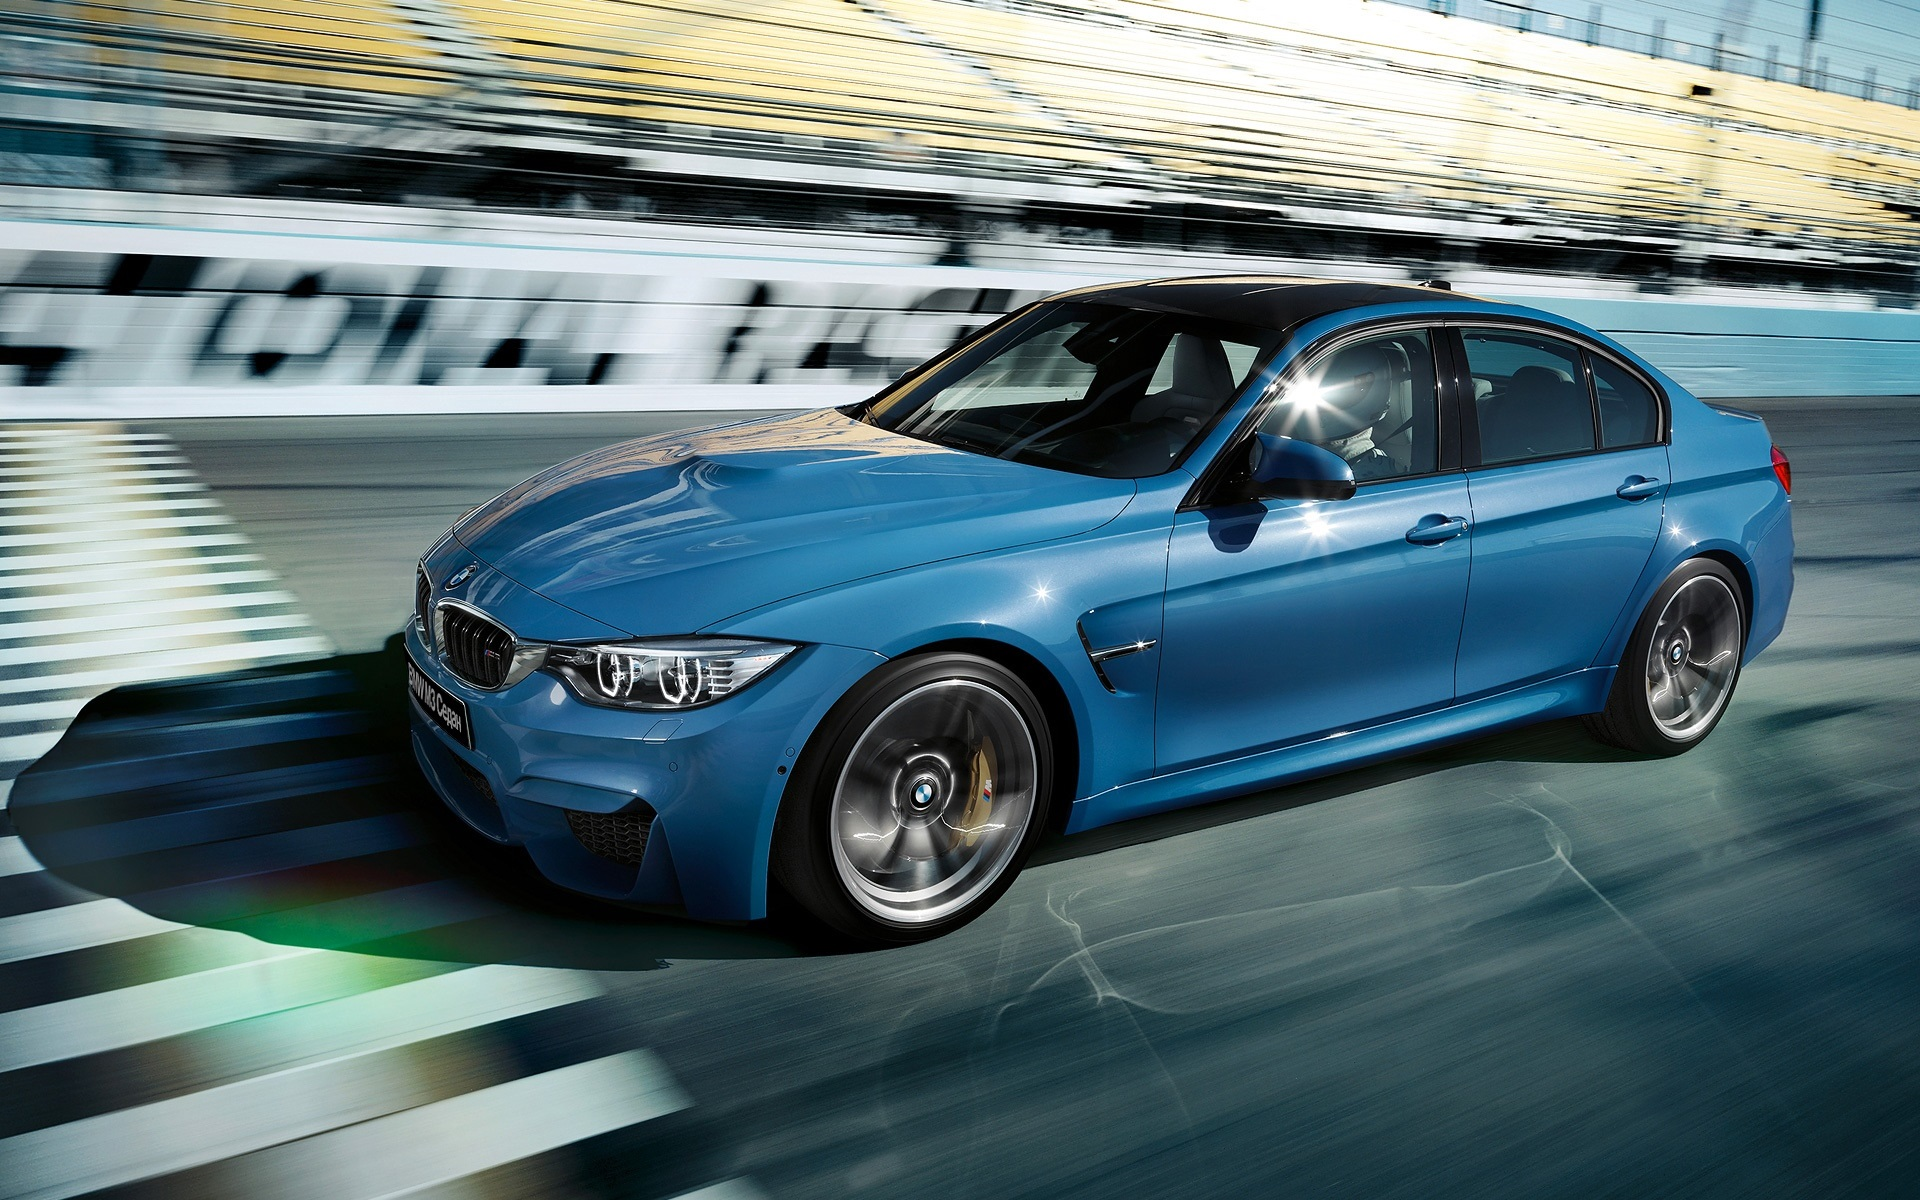 Wallpaper 2015 Bmw M3 Sedan F80 Blue Car Speed 1920x1200 Hd Picture Image